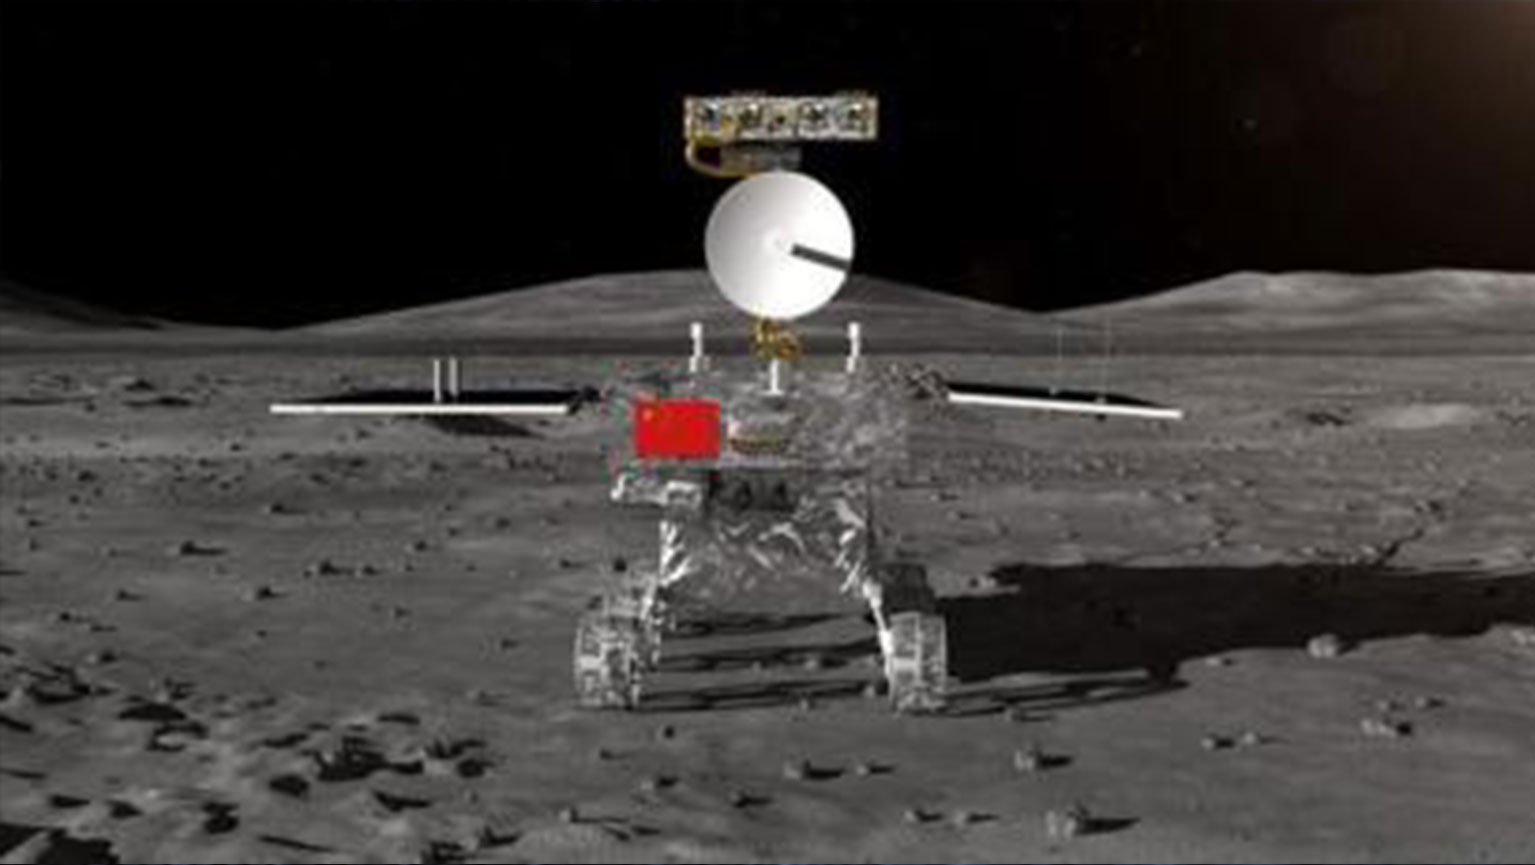 Bio Experiment on the Moon